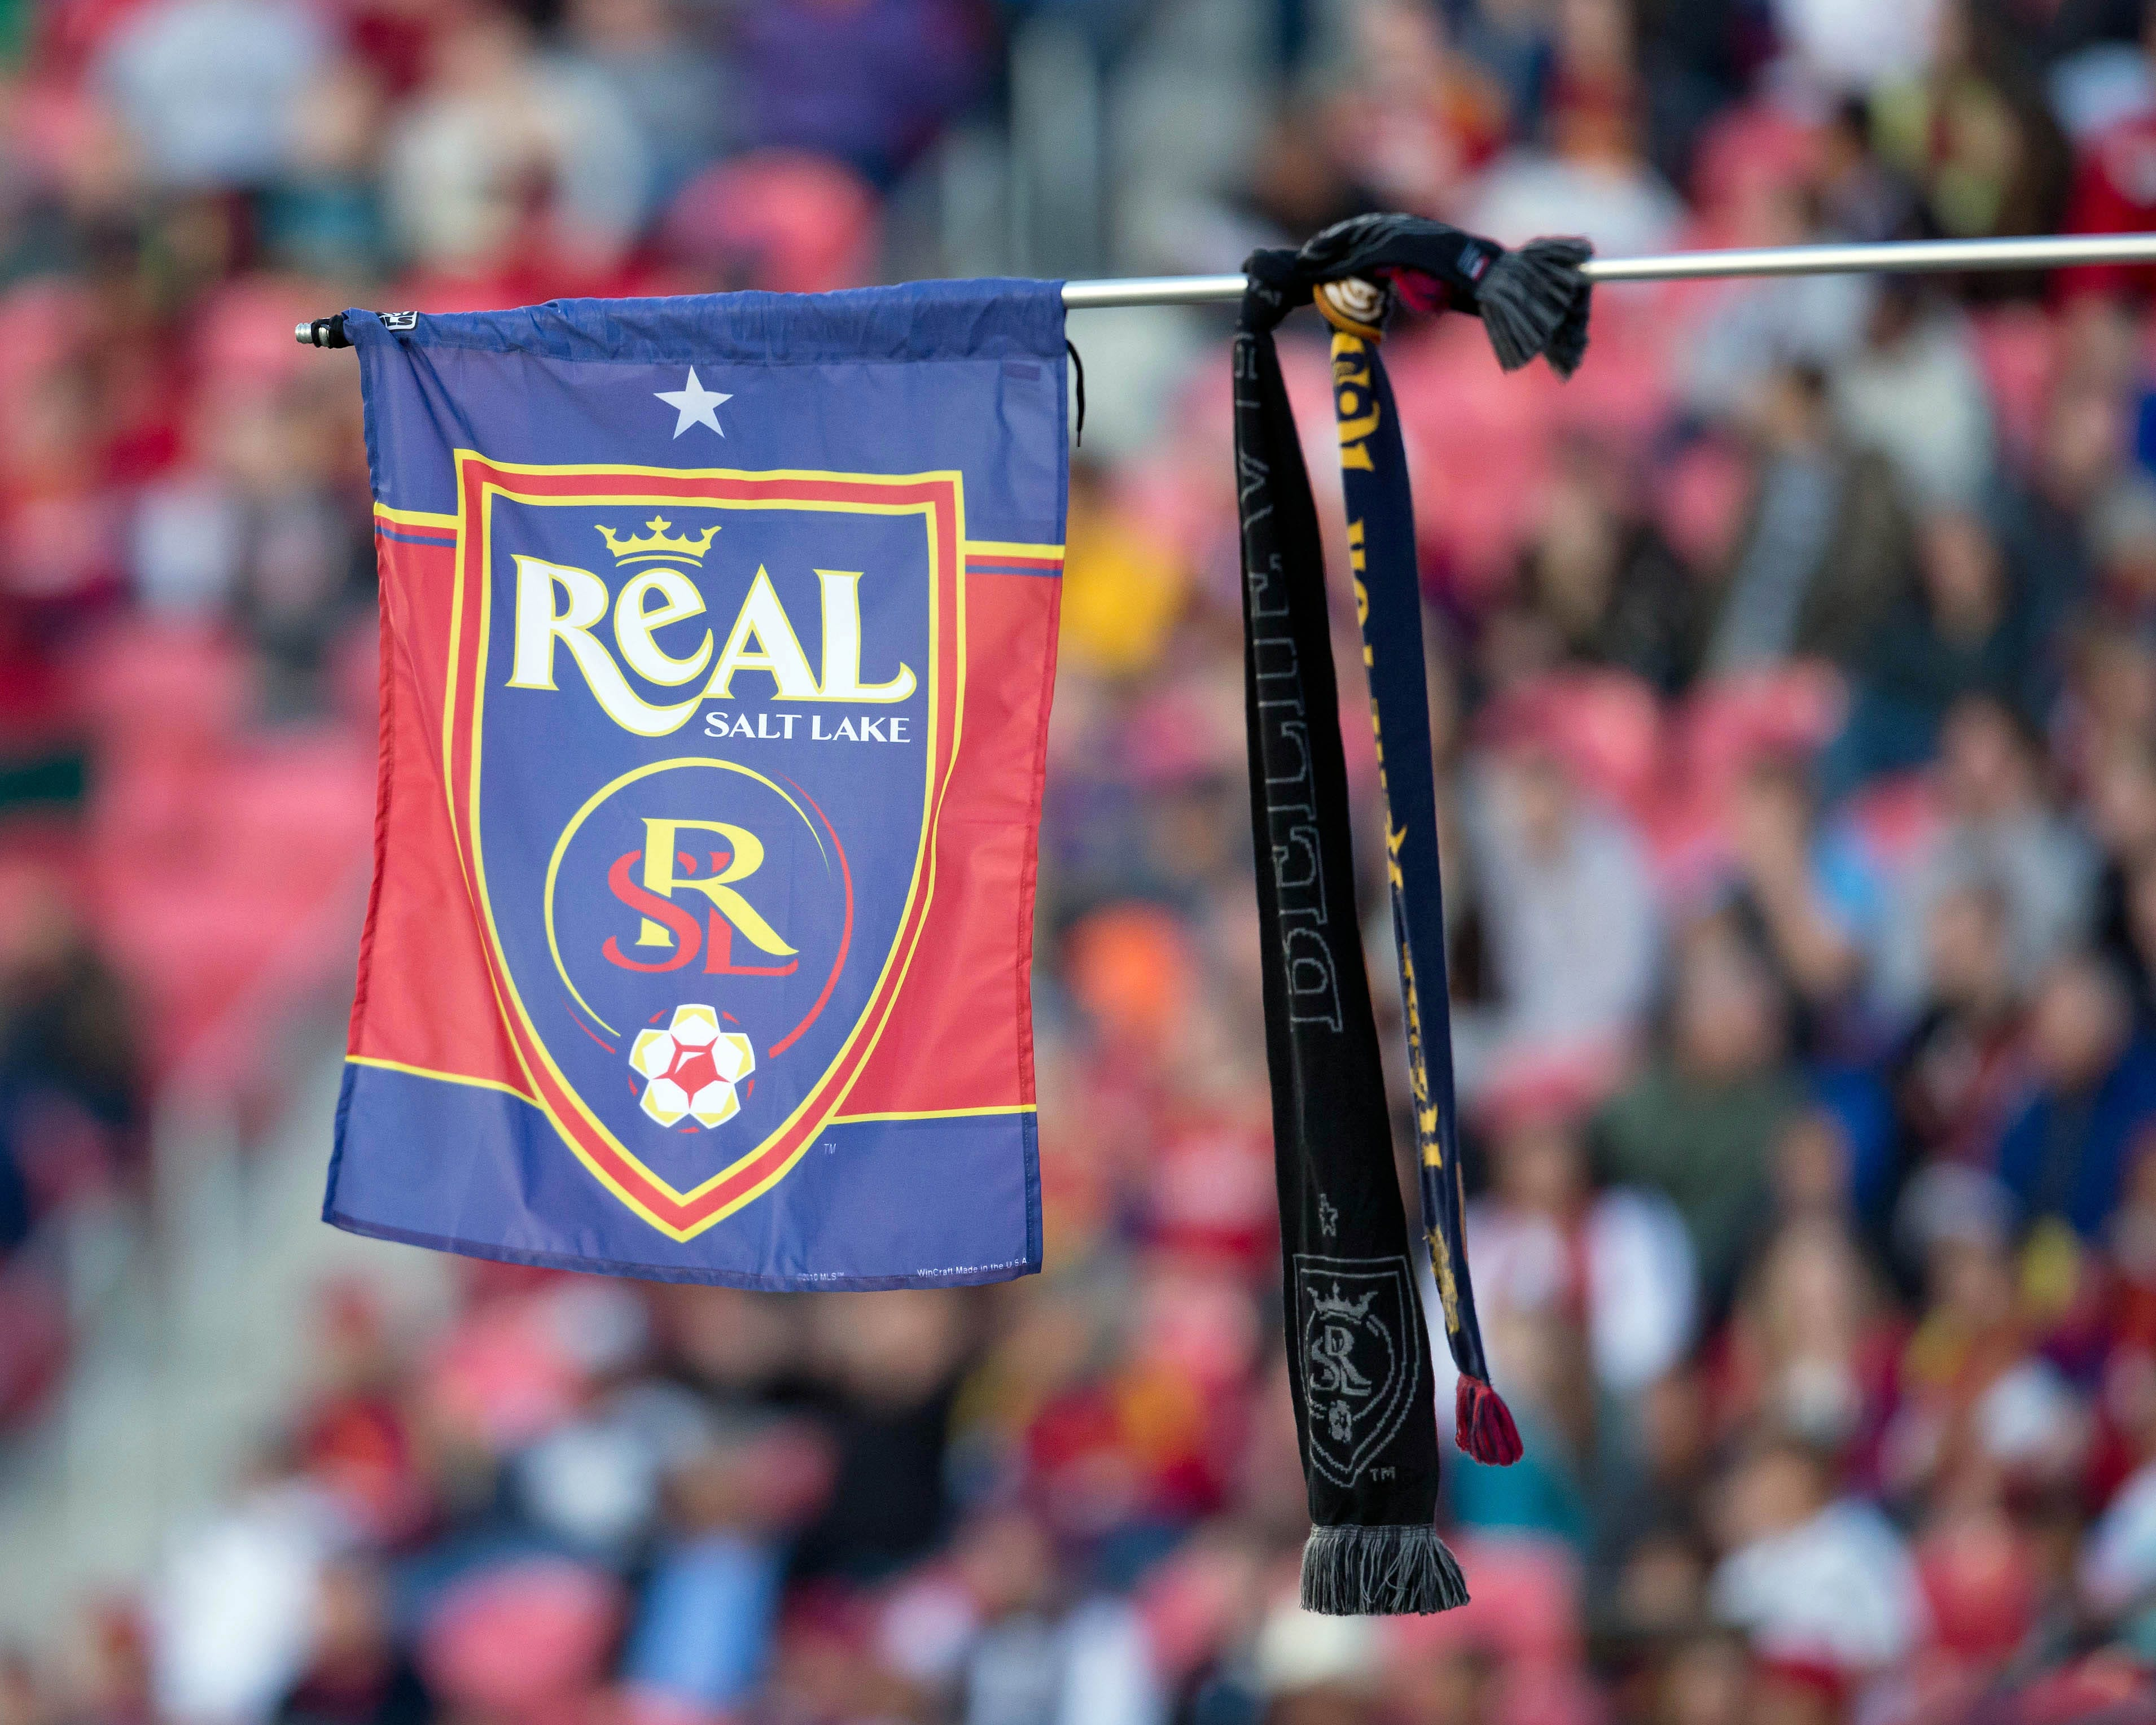 Major League Soccer to investigate Real Salt Lake owner Dell Loy Hansen over alleged racist comments